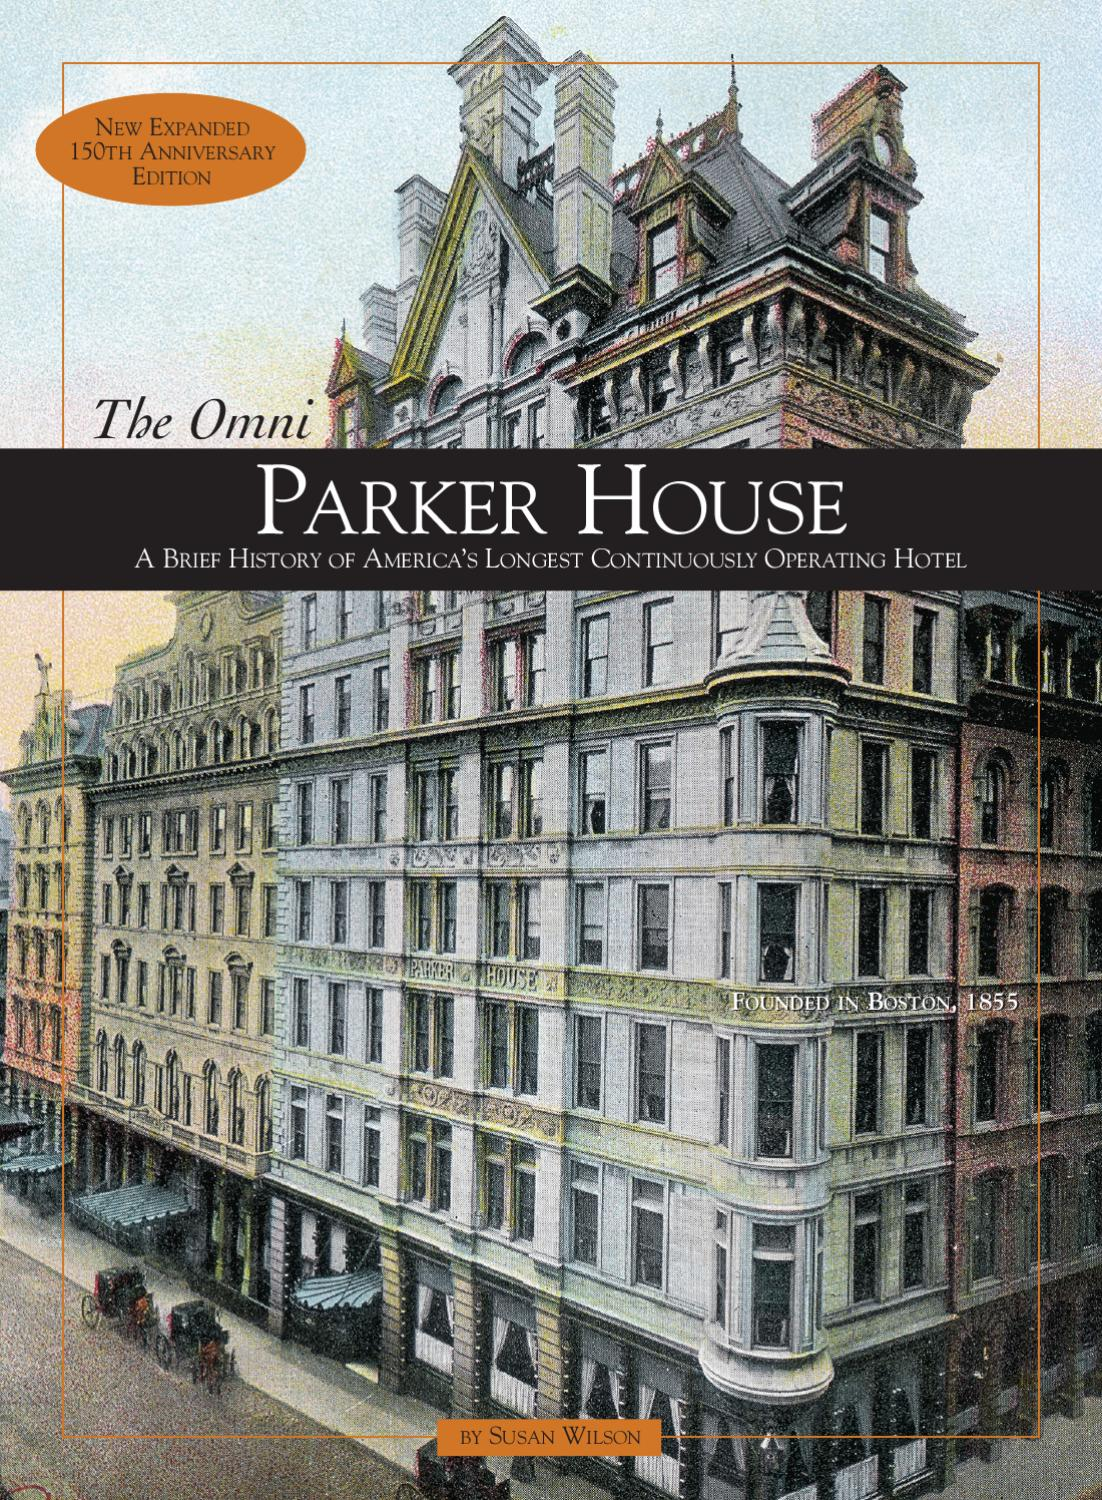 Omni Parker House Hotel Book By Nieshoff Design Issuu